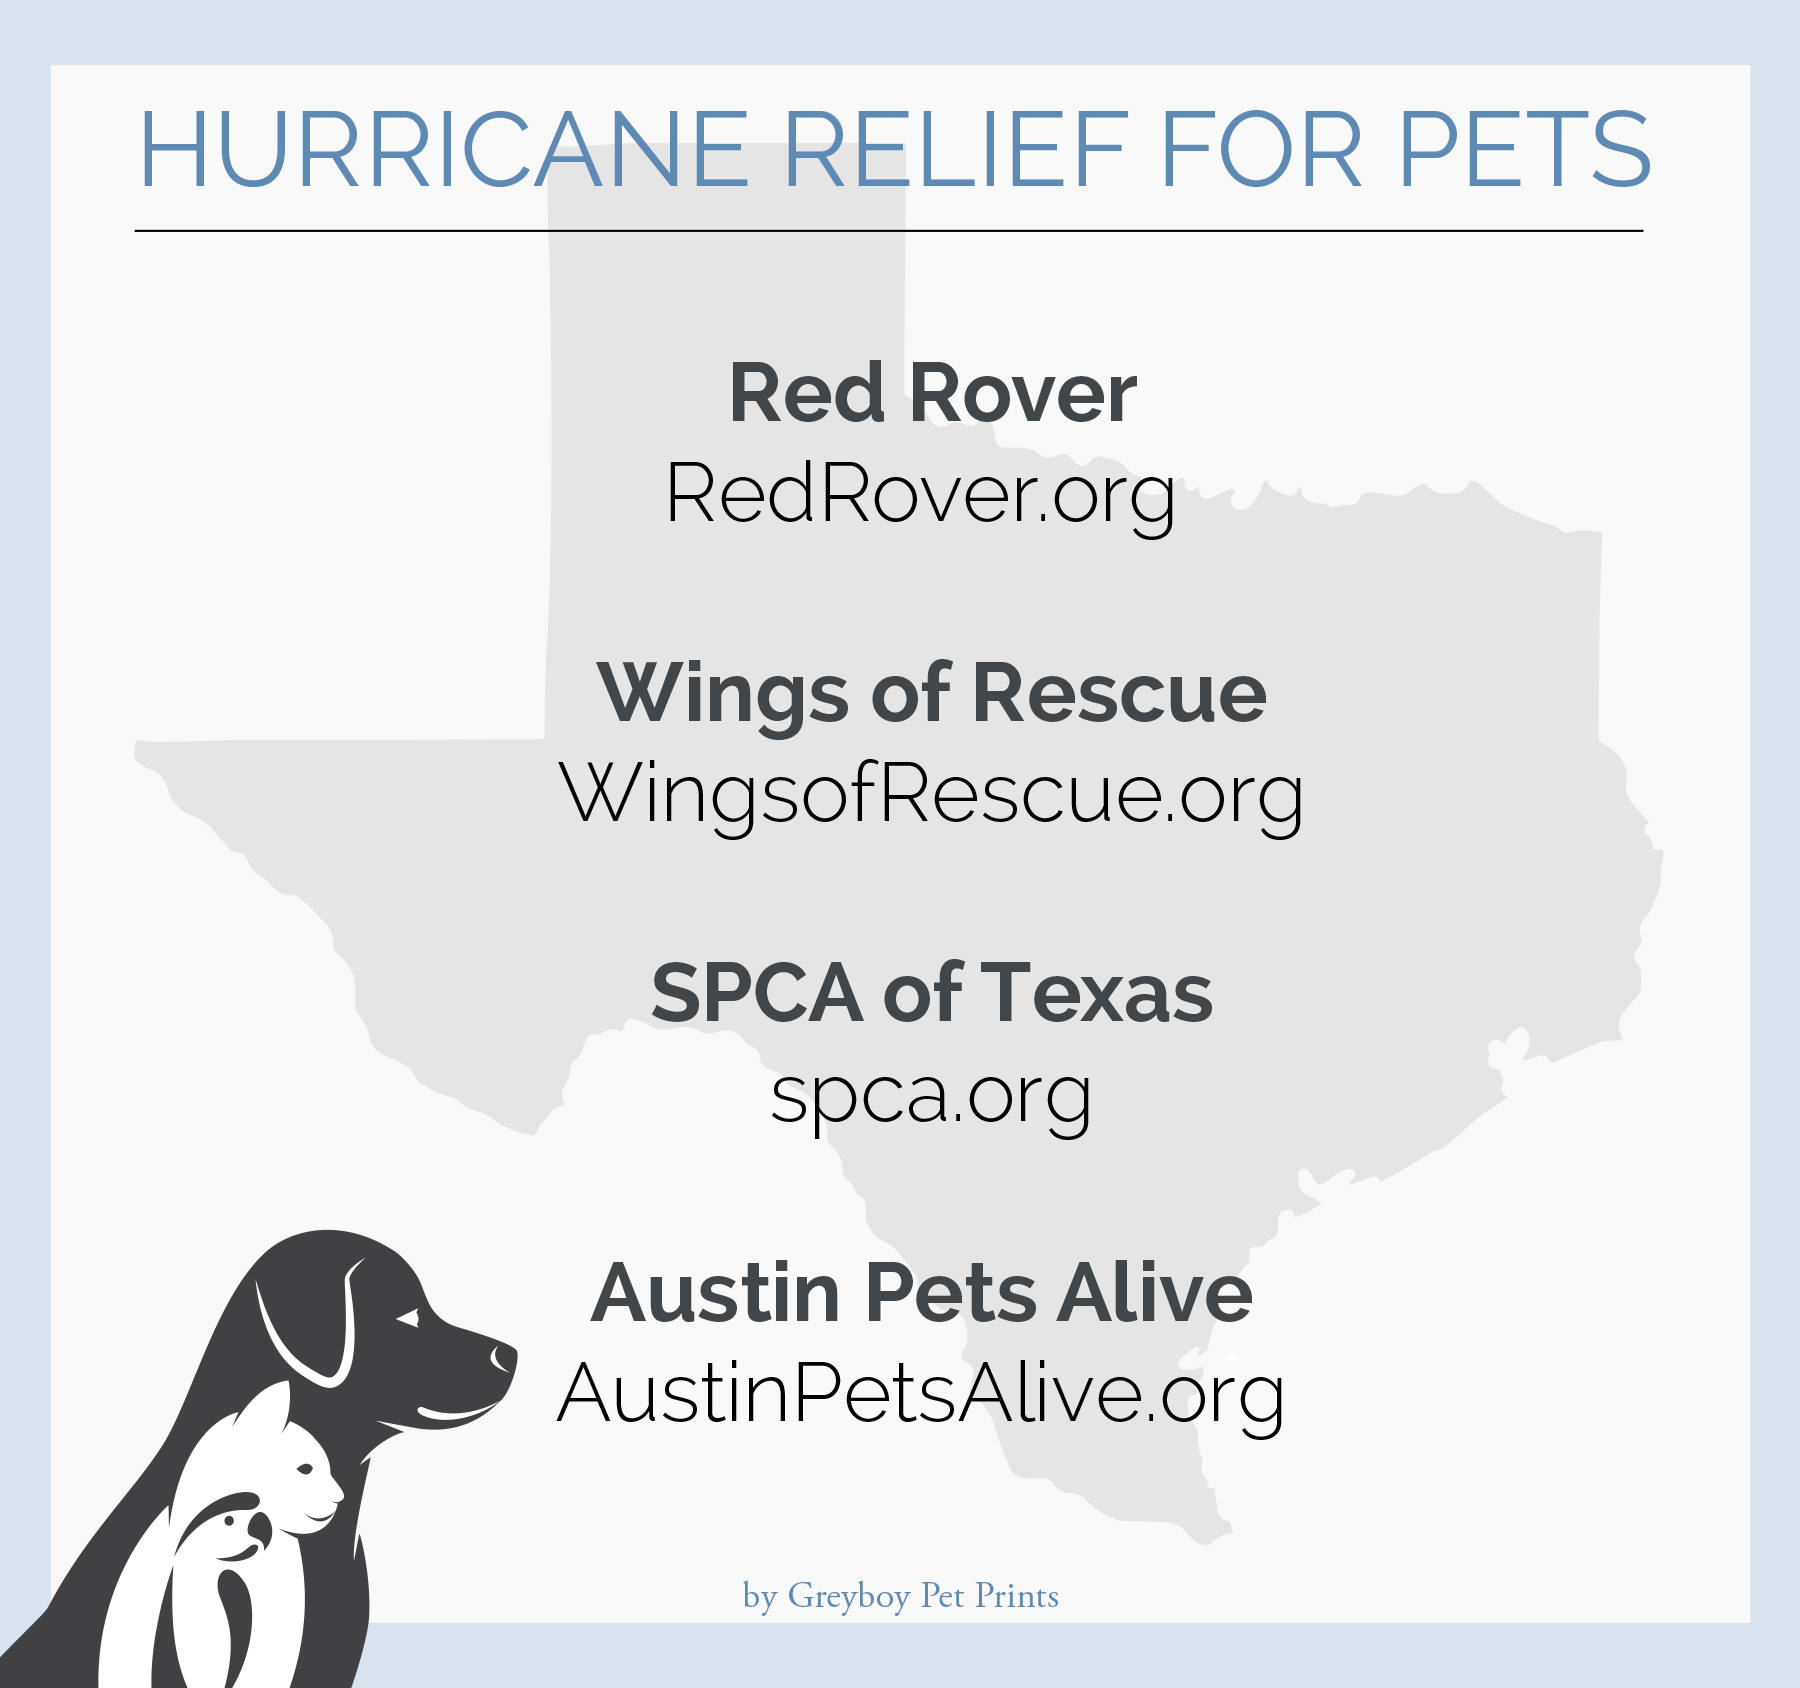 How To Help Pets Affected by Hurricane Harvey